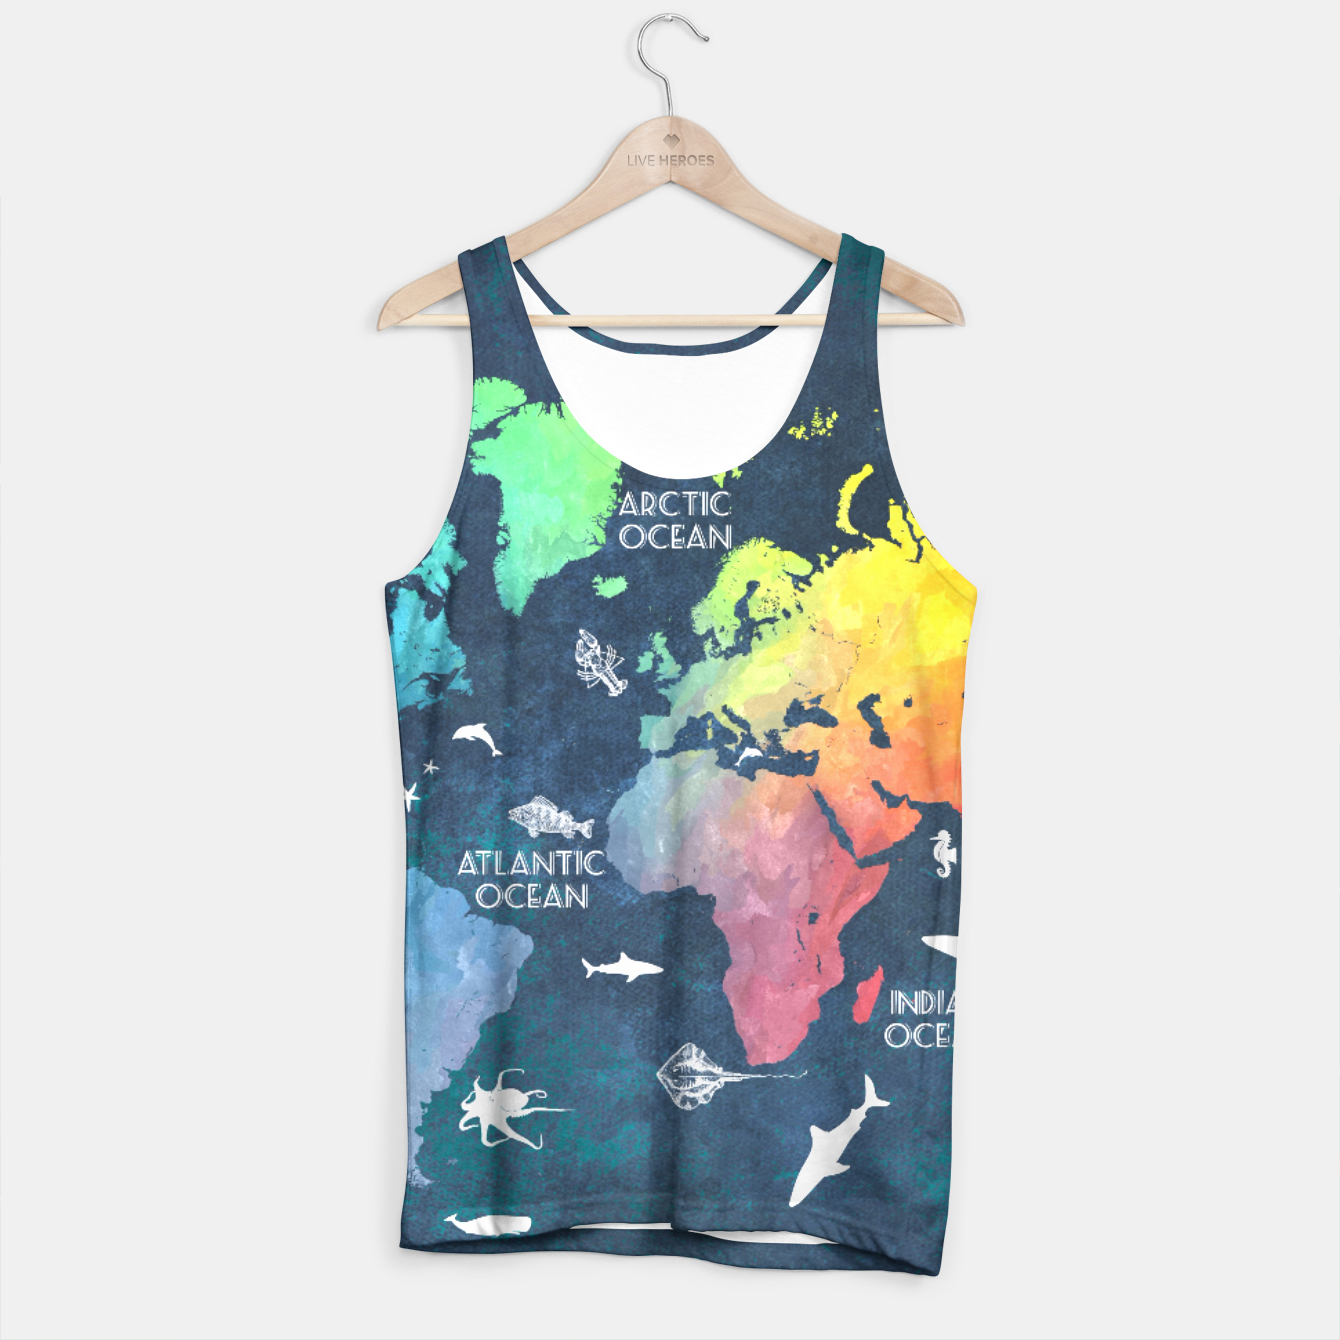 World map text art tank top live heroes image of world map text art tank top live heroes gumiabroncs Images